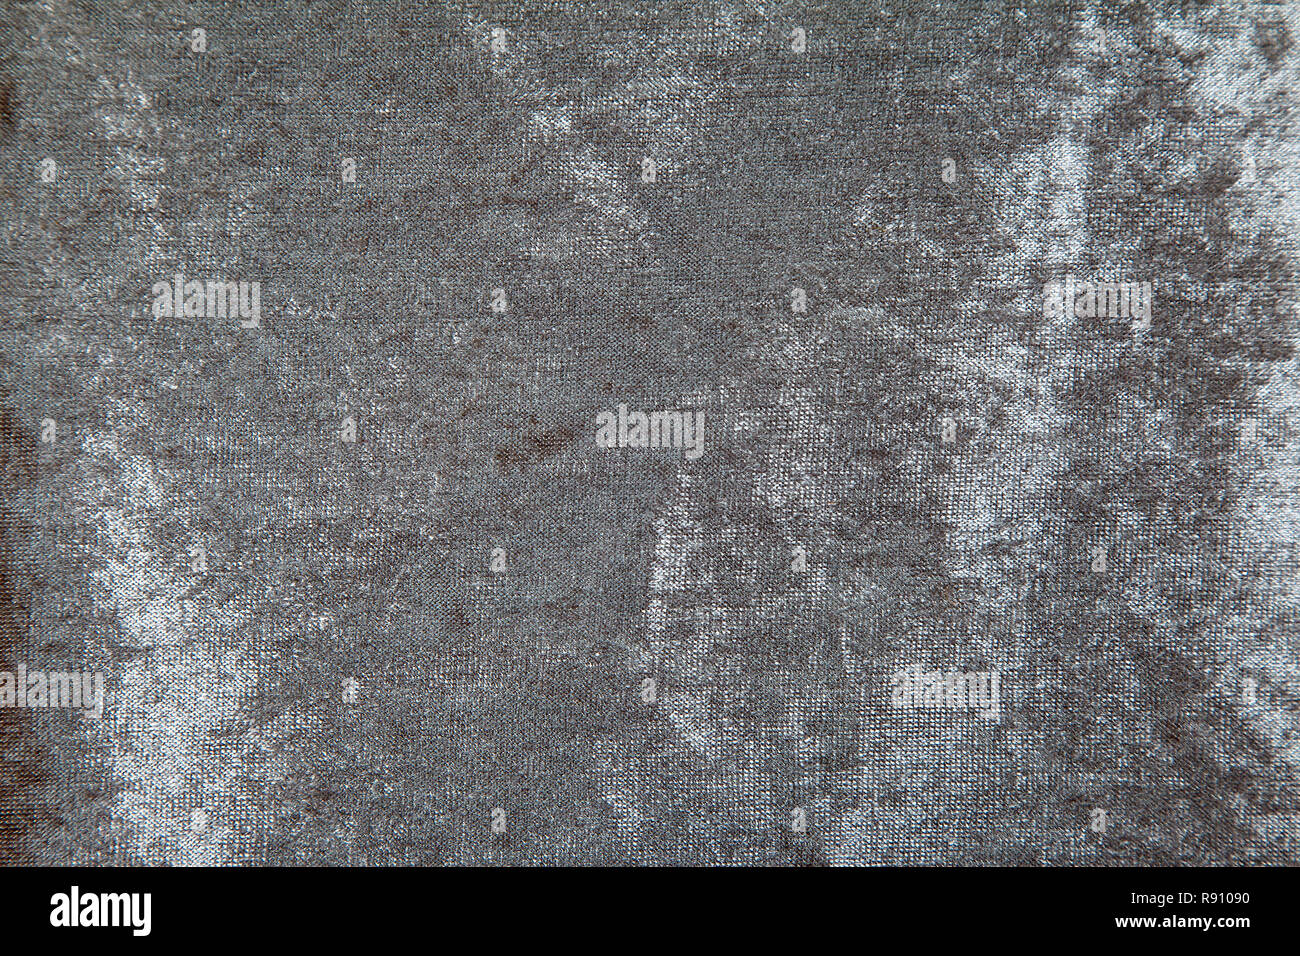 Gray Velvet Fabric Canvas For Upholstery Furniture Indoor Closeup